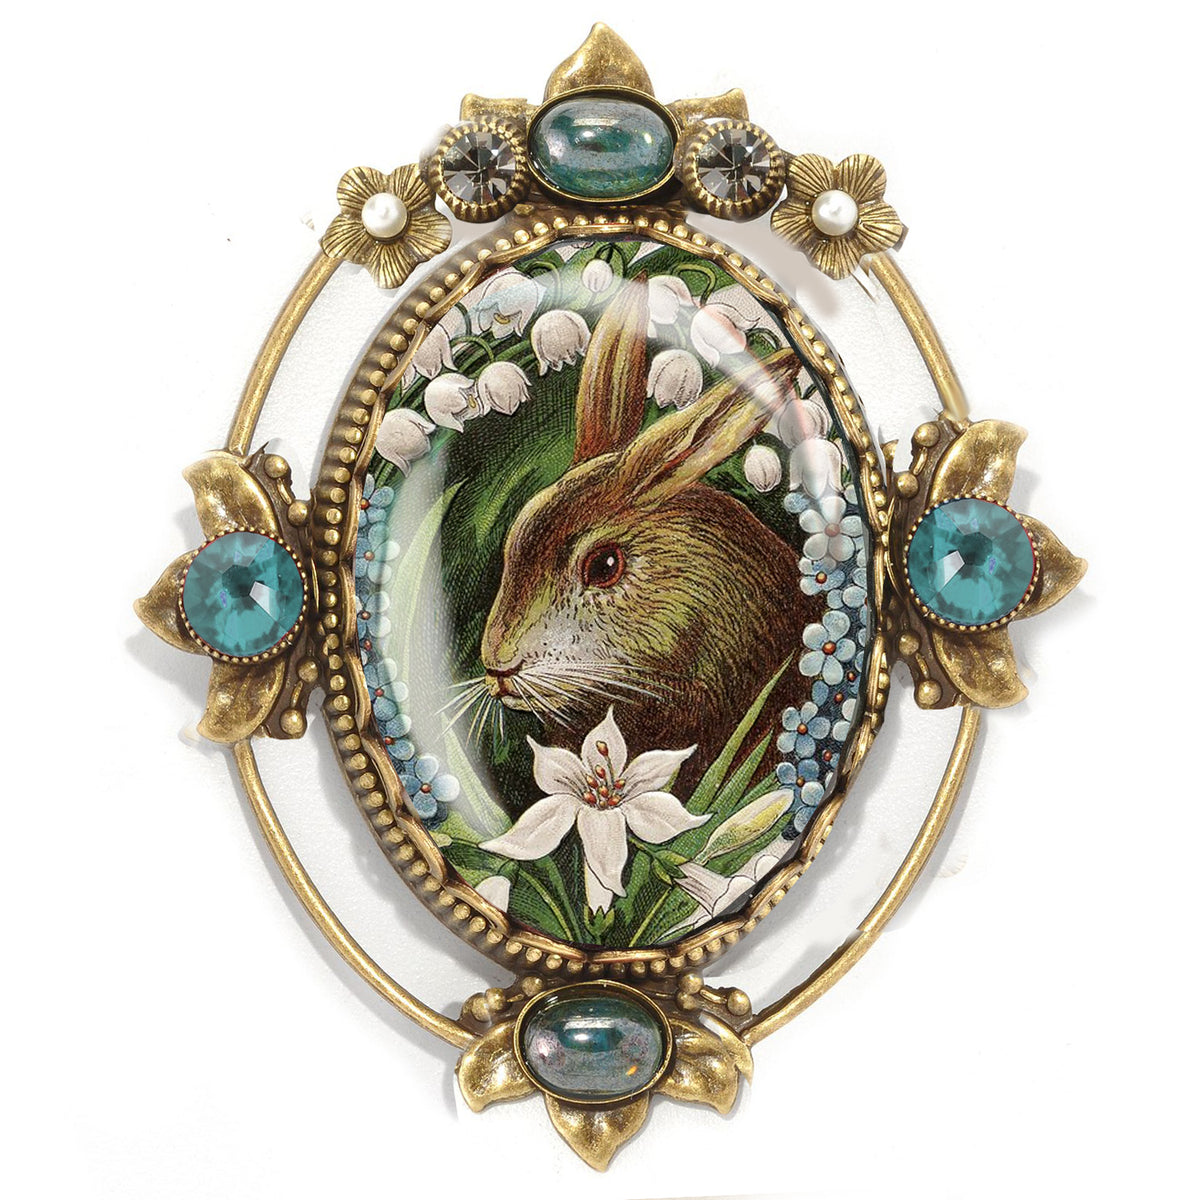 Vickie the Bunny Vintage Easter Pin P330-VI